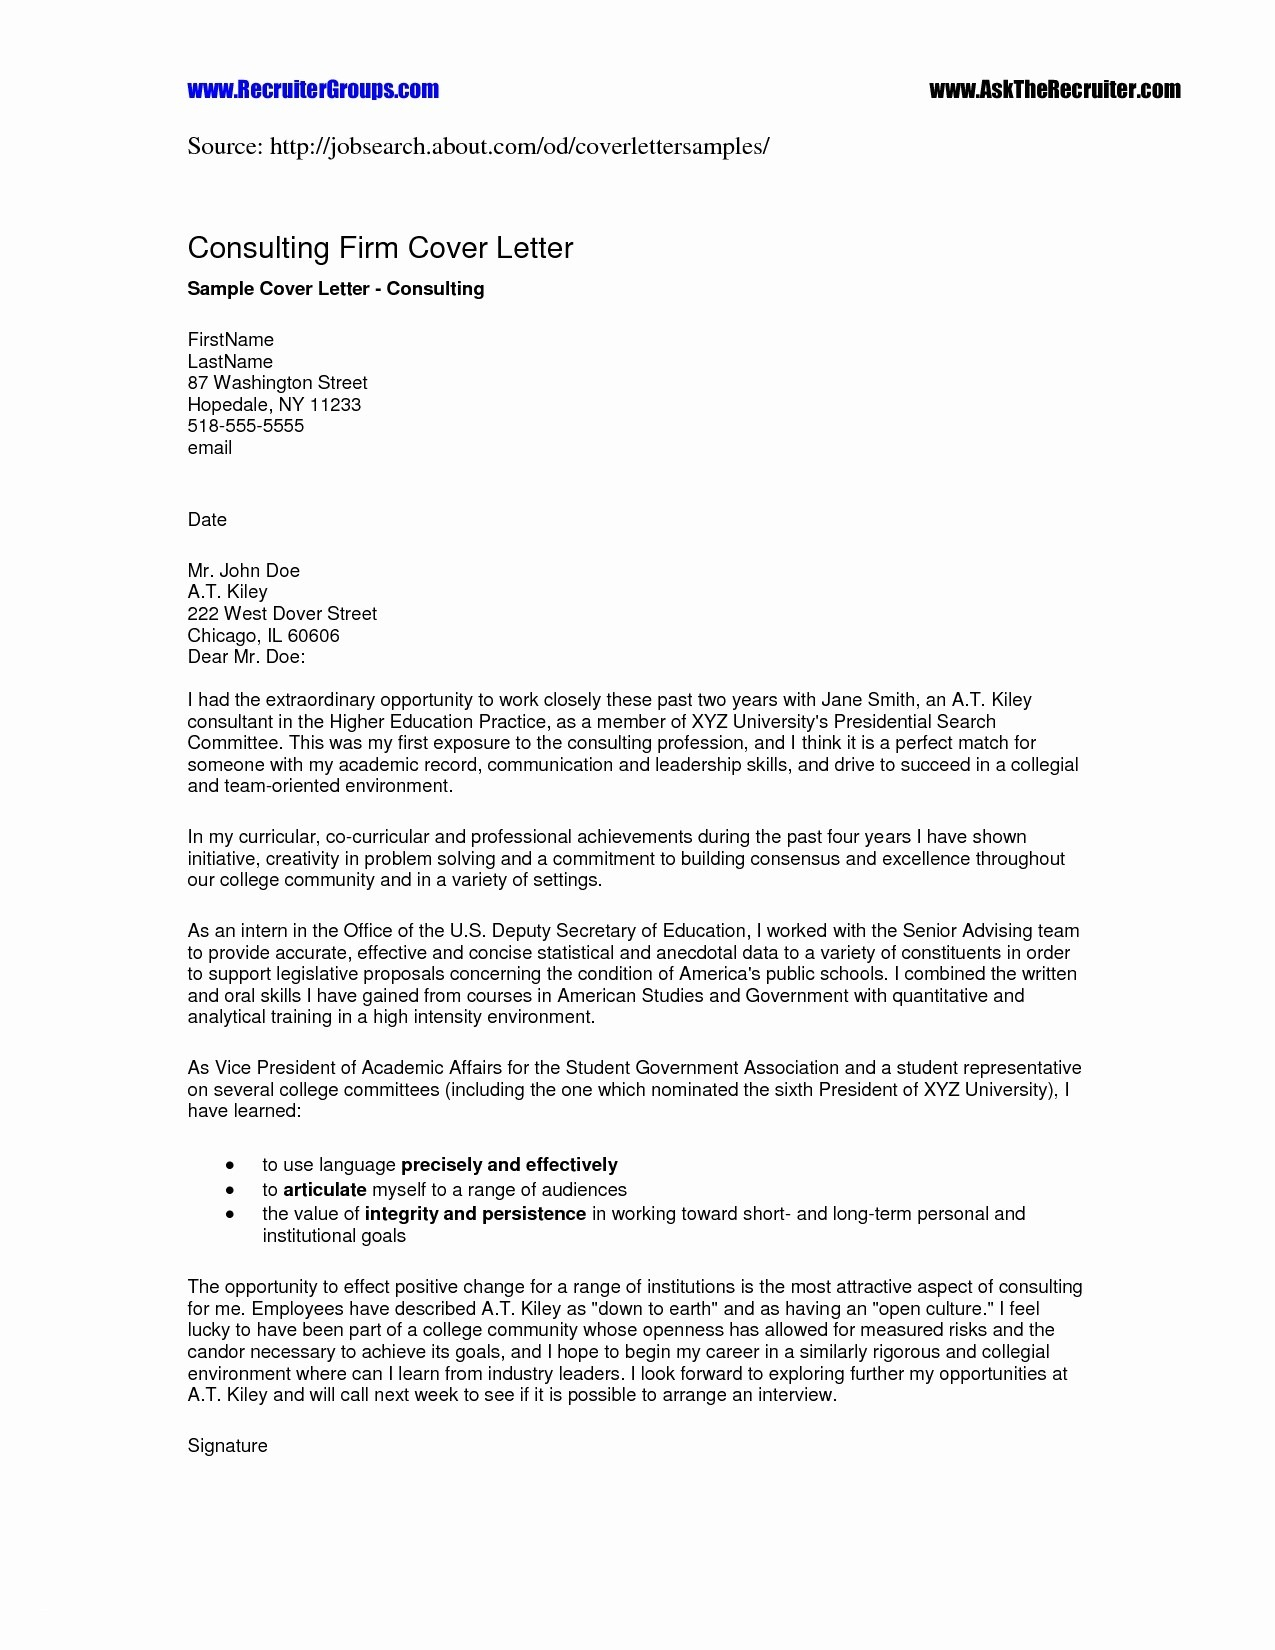 Free Employment Verification Letter Template - Free Resume for Job Application Unique Sample Cover Letter for Good